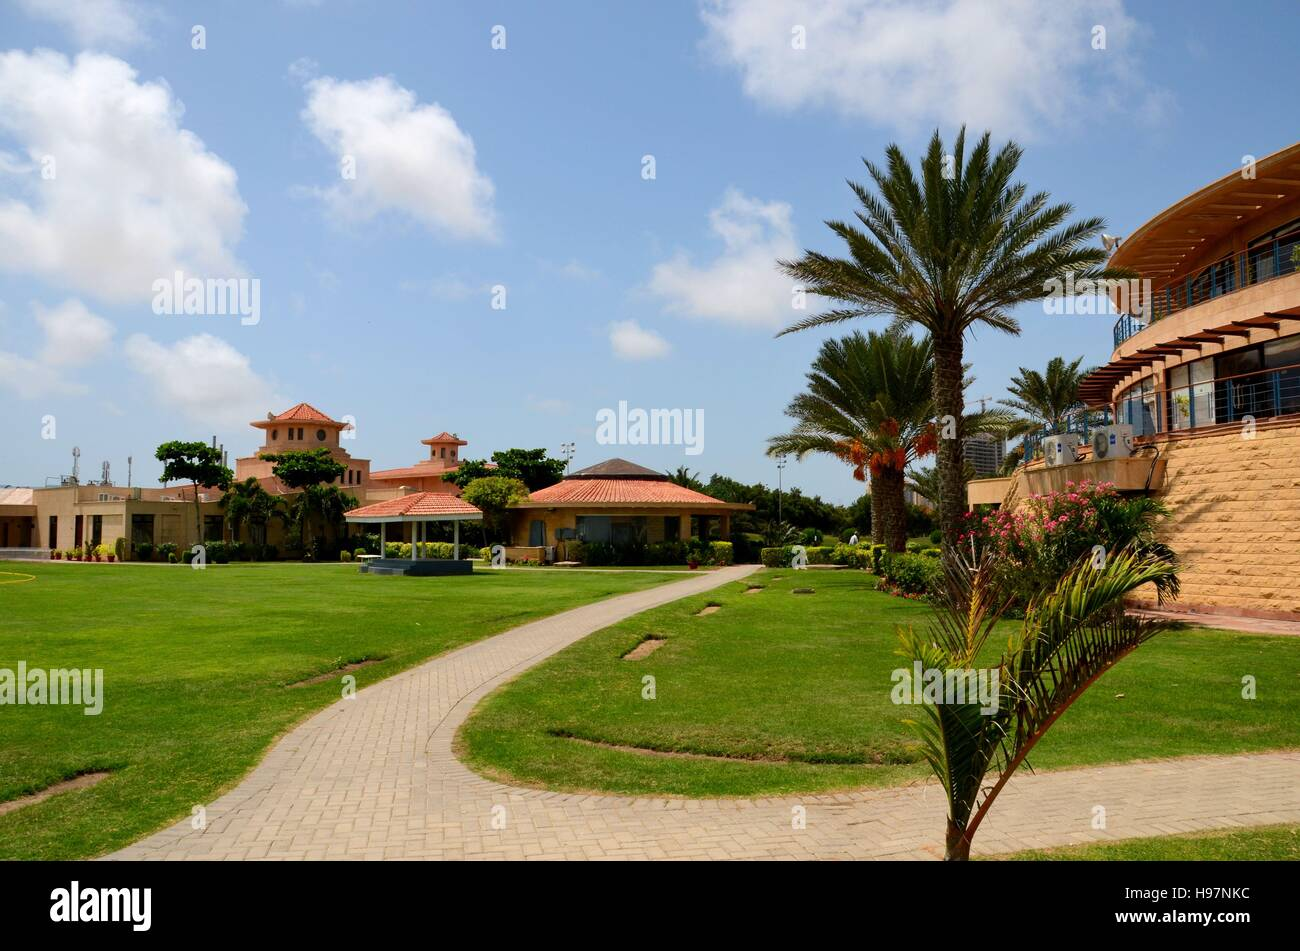 Clubhouse and gardens with pedestrian path at DHA Golf club